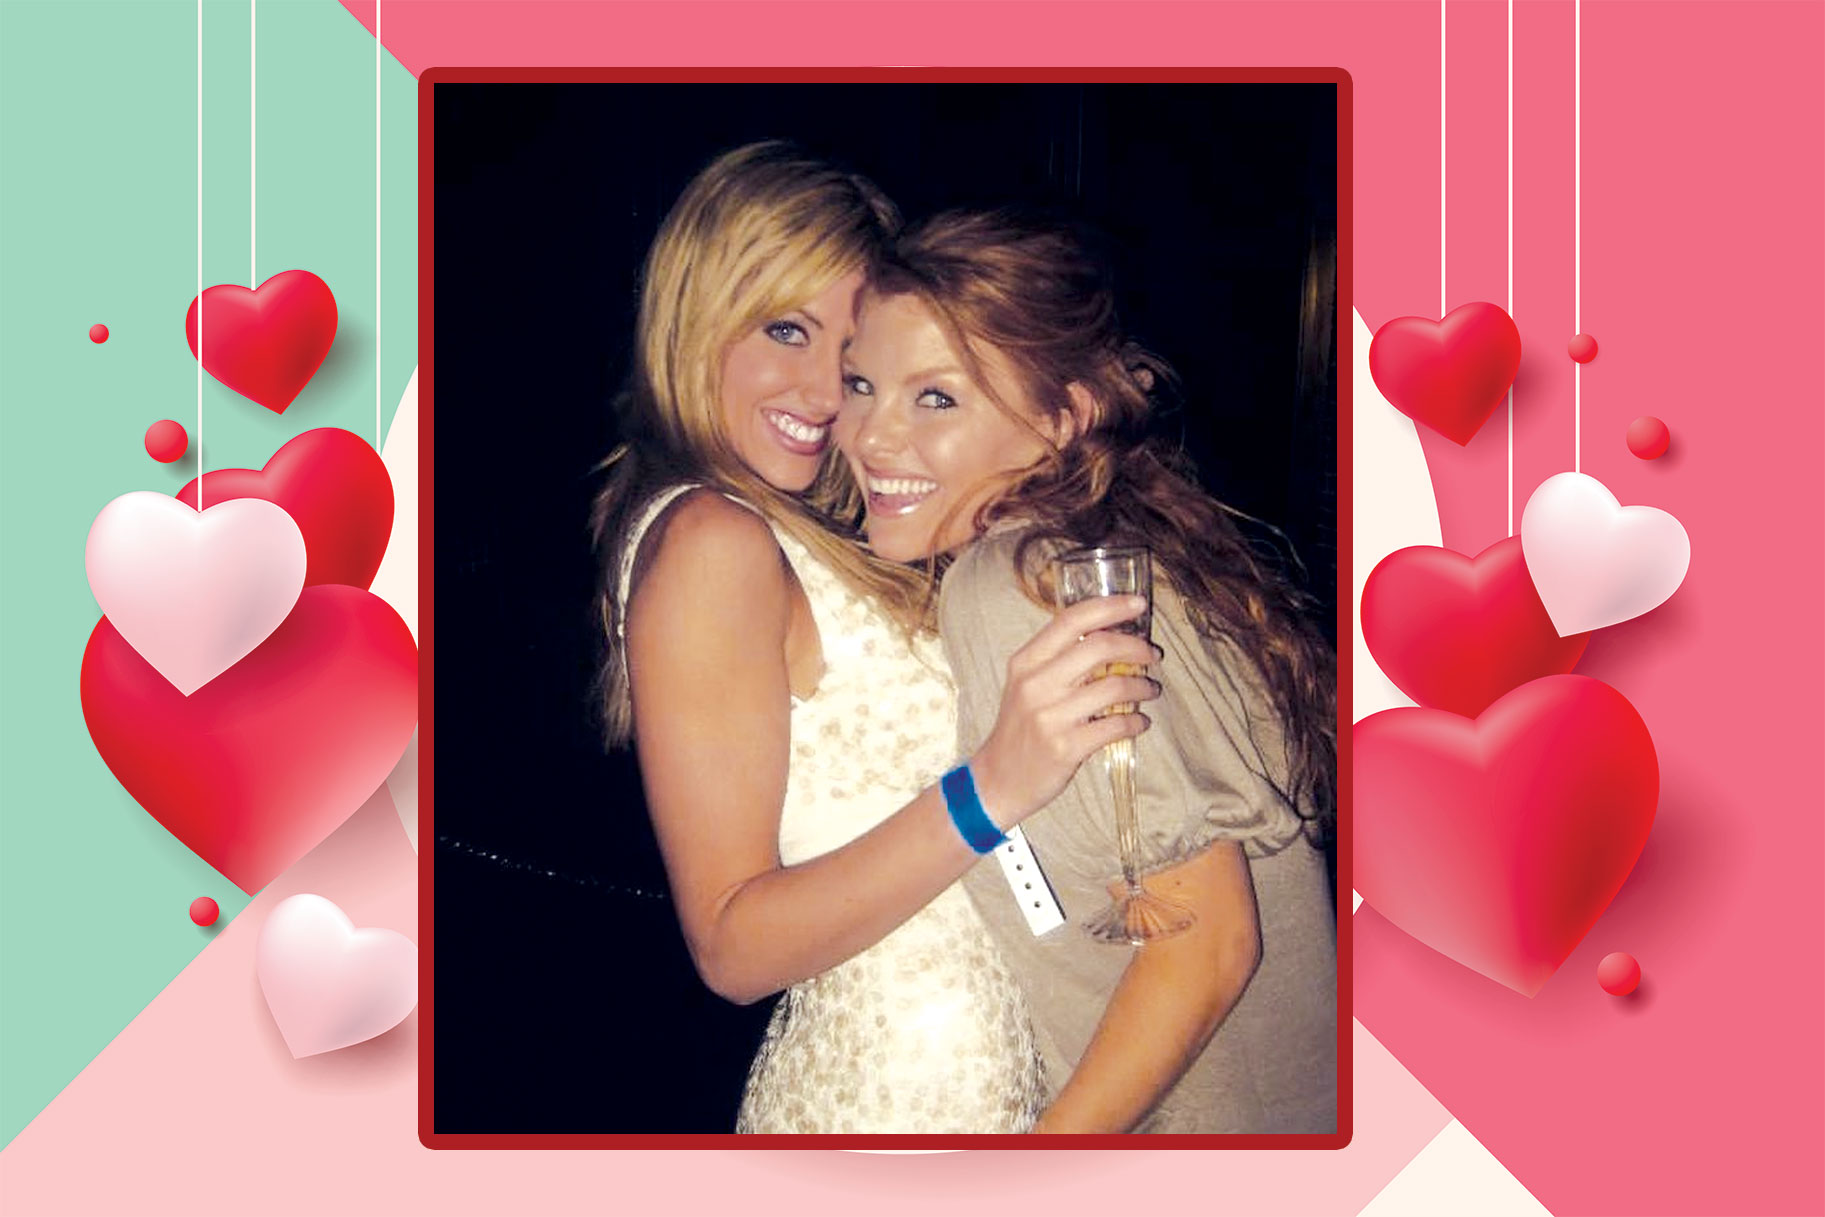 Brandi Redmond and Stephanie Hollman